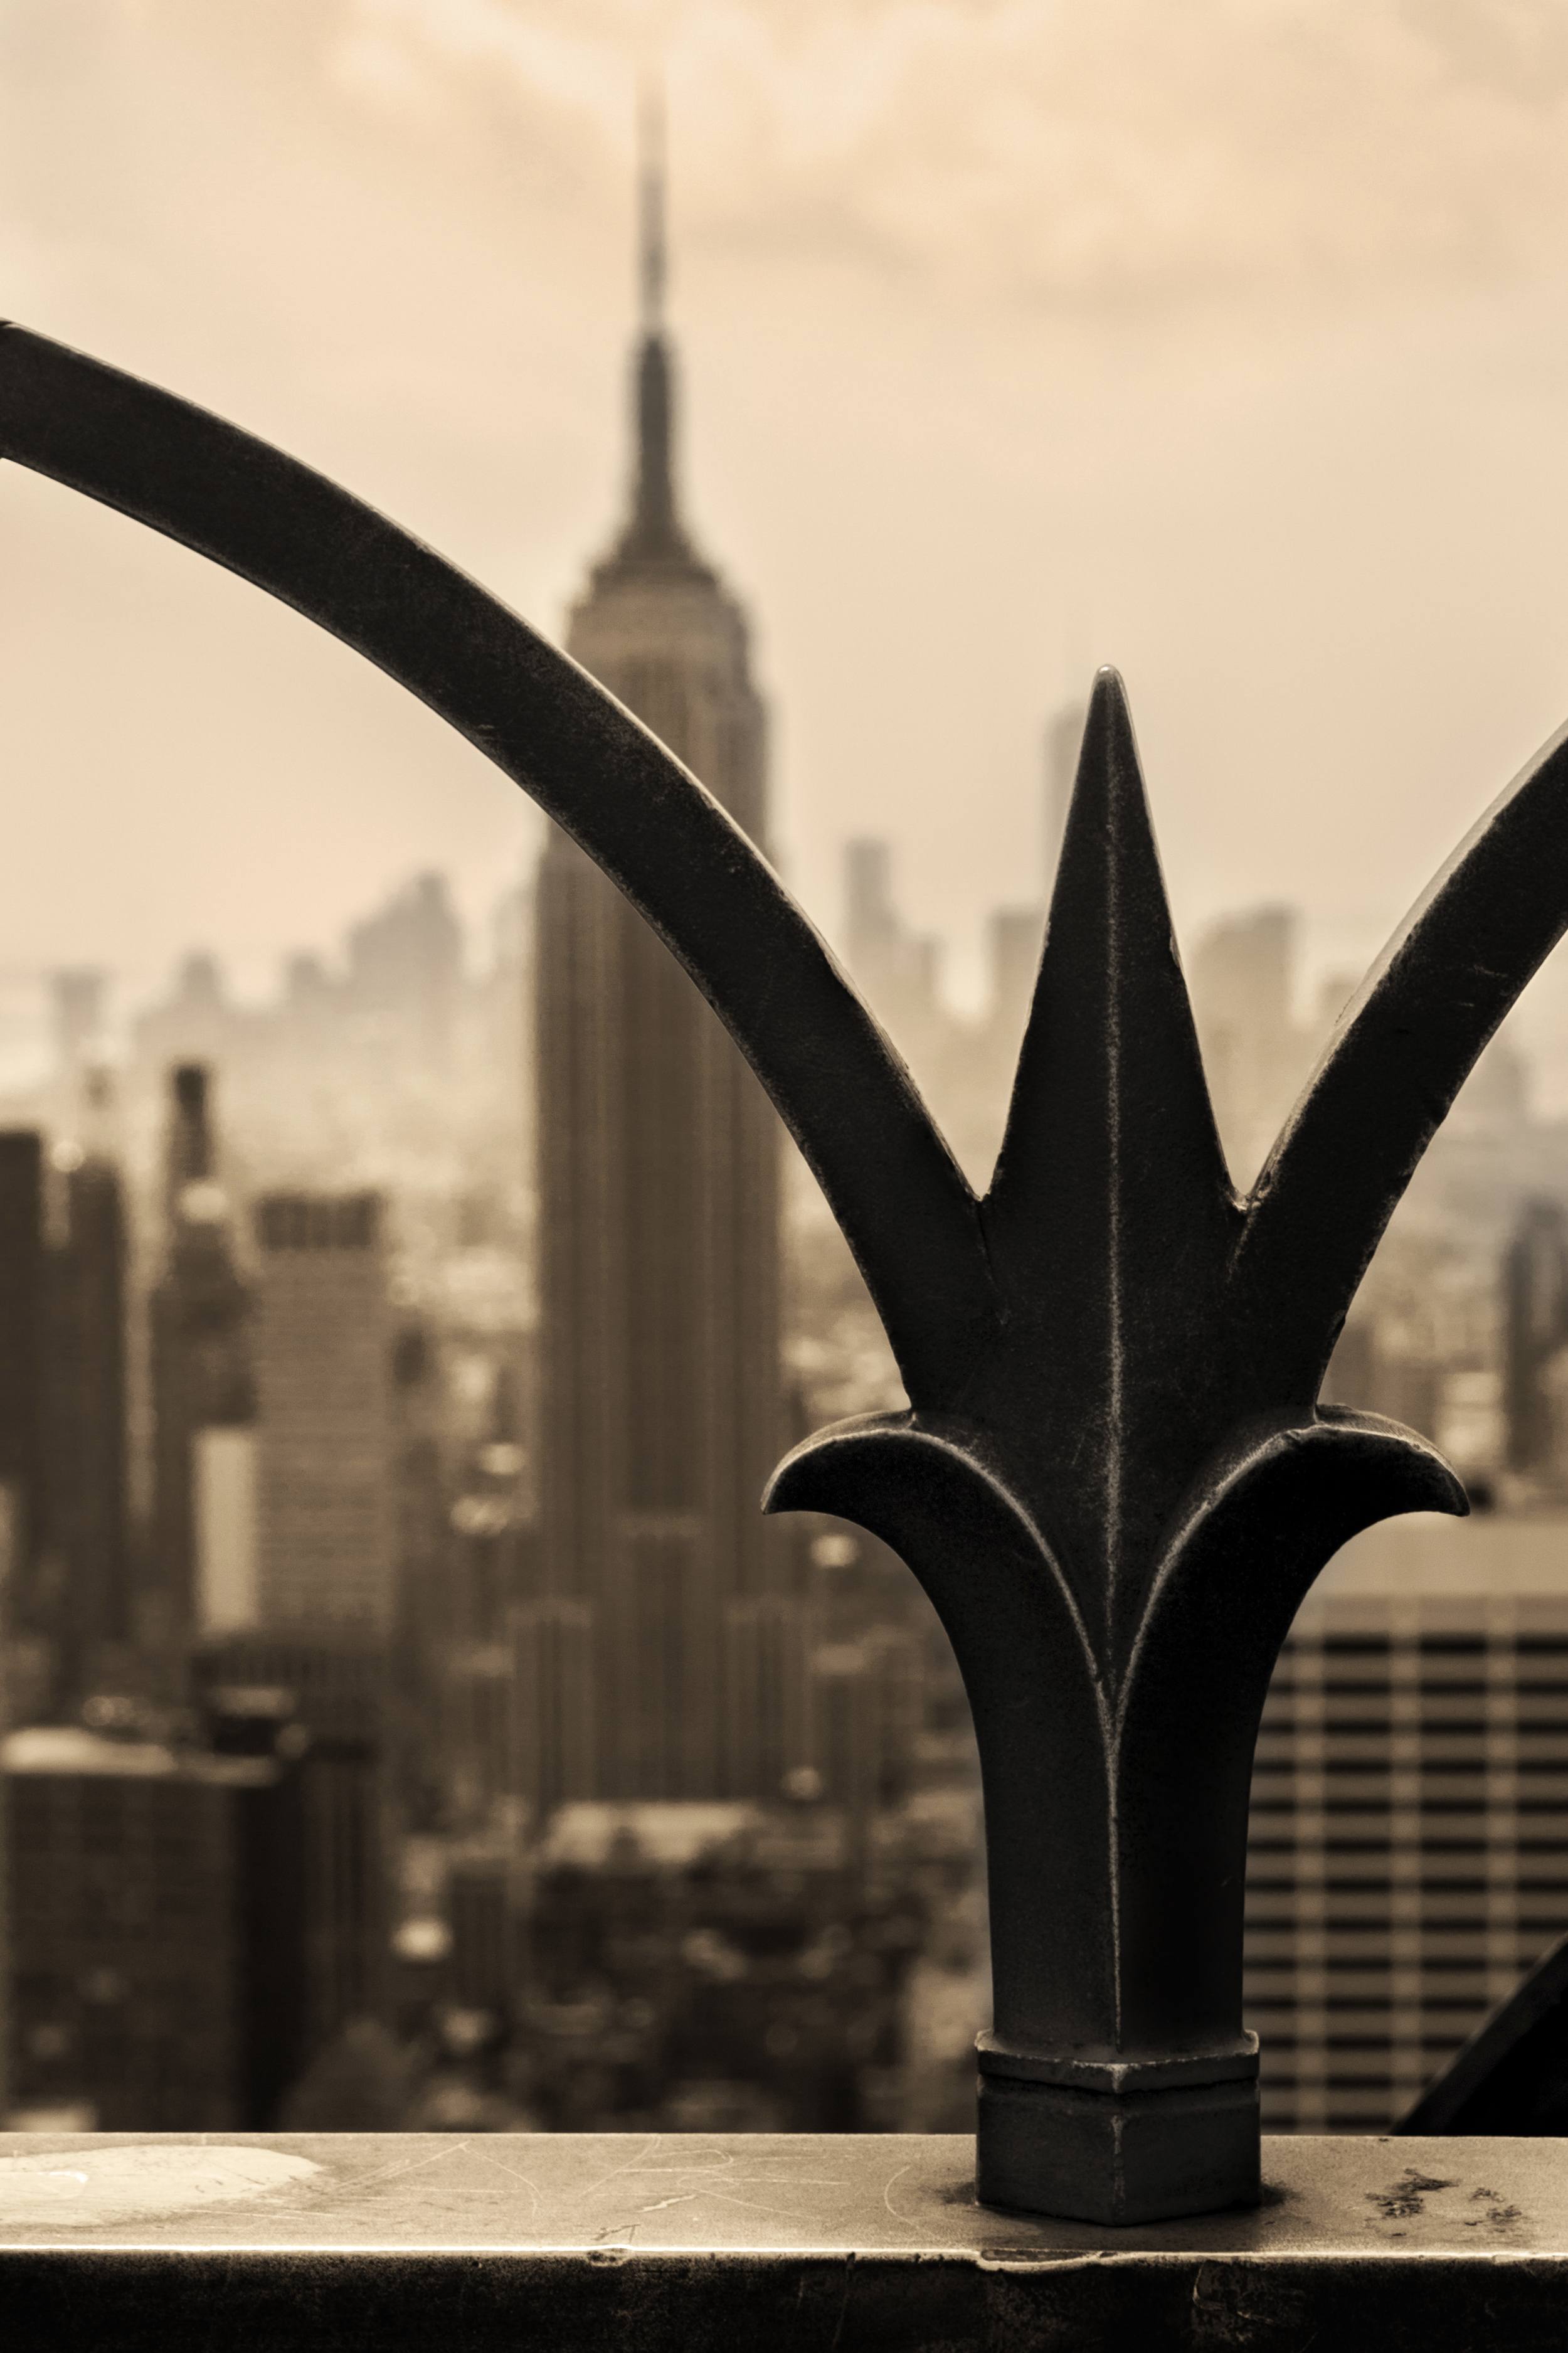 Top of the Rock (Rockefeller Center) with Empire State Building in the Background